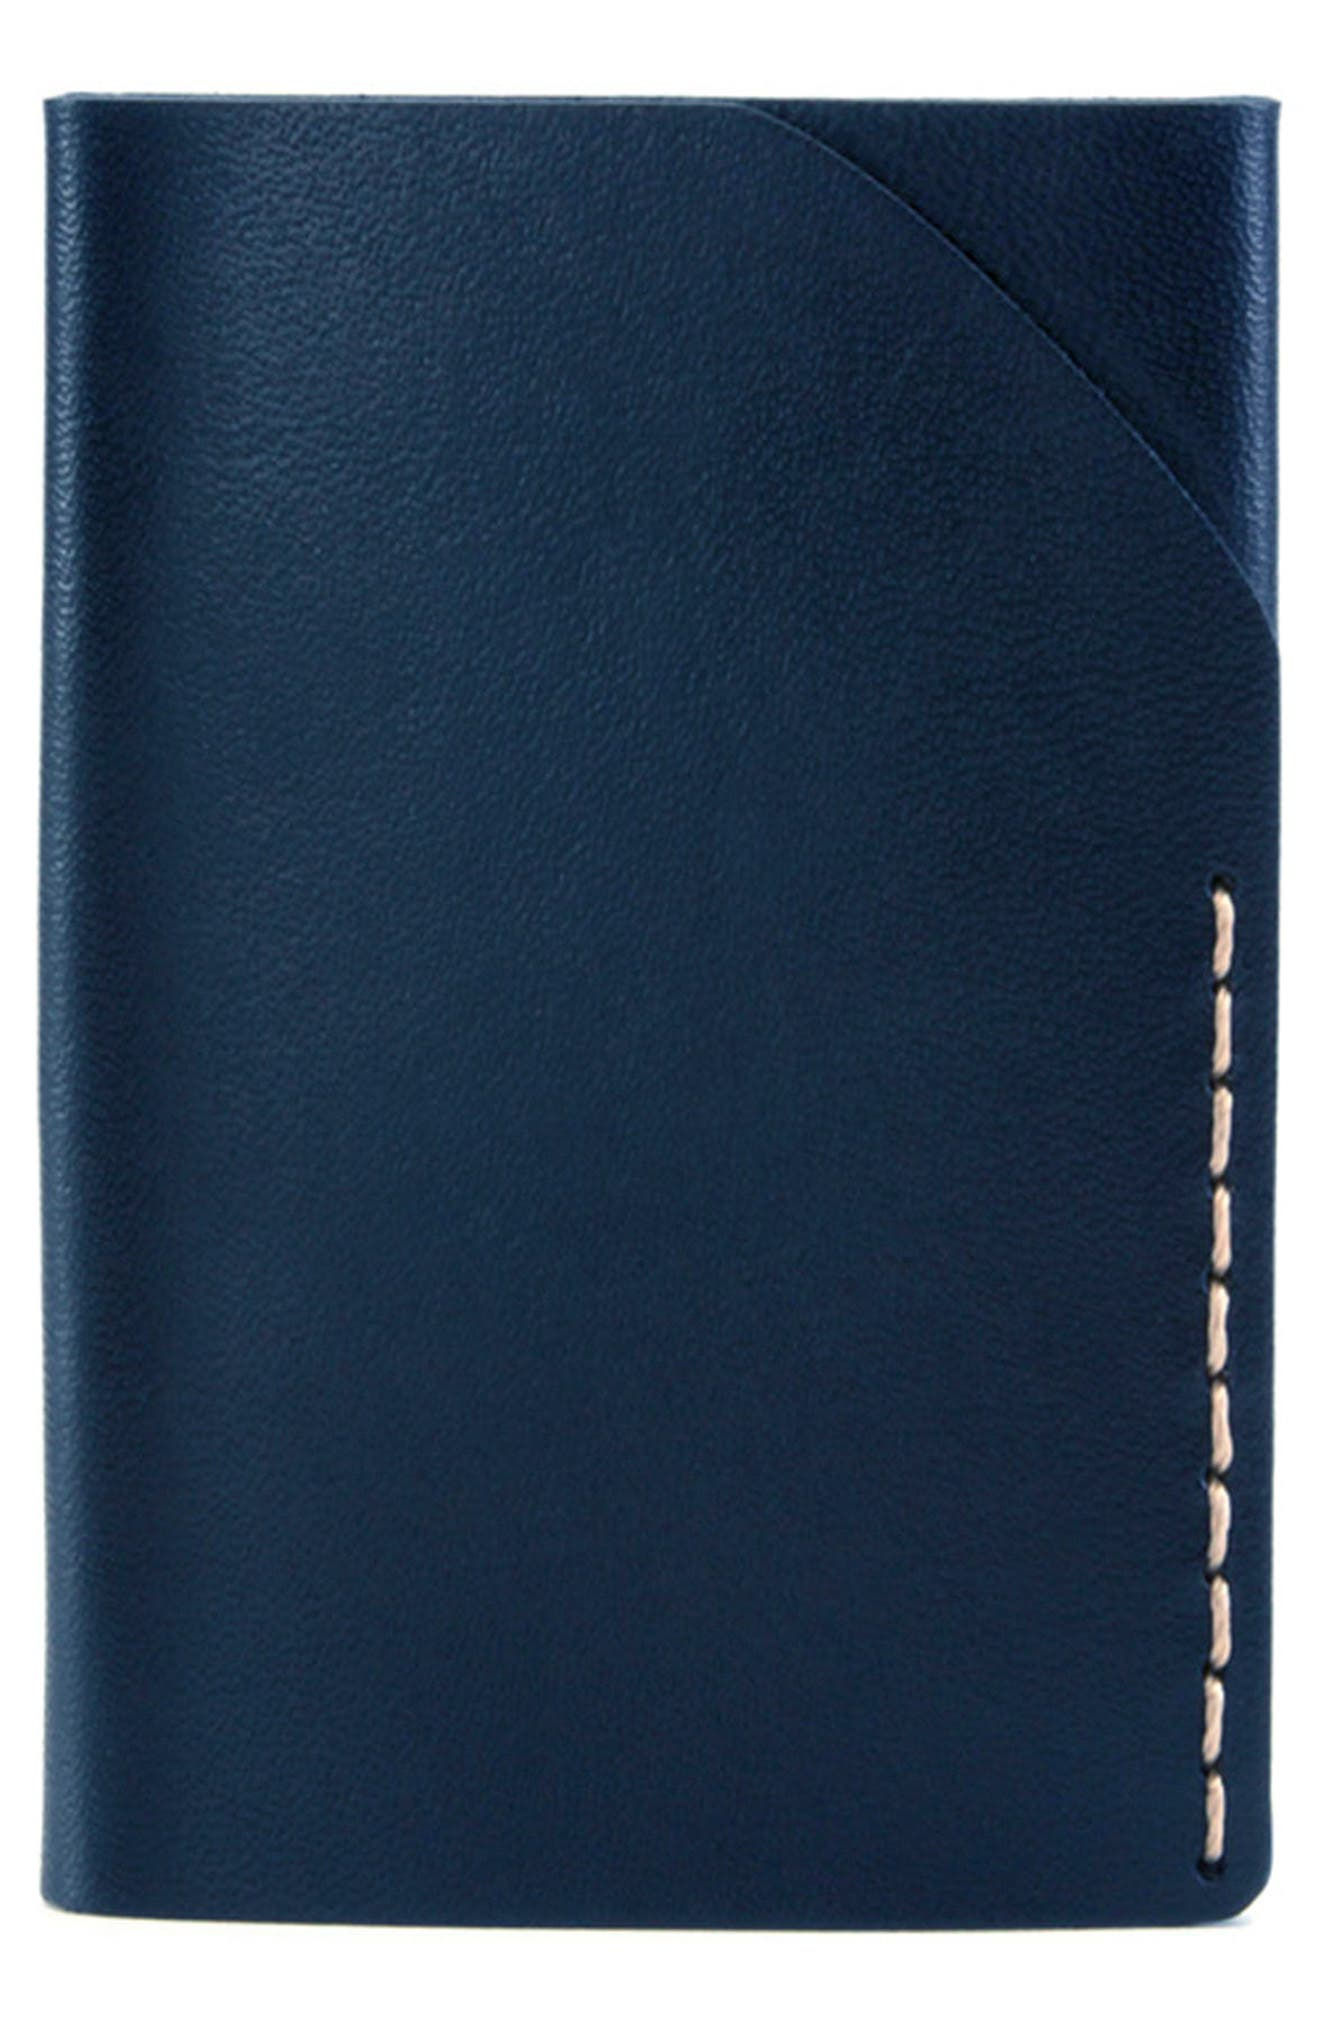 No. 2 Leather Card Case,                         Main,                         color, NAVY